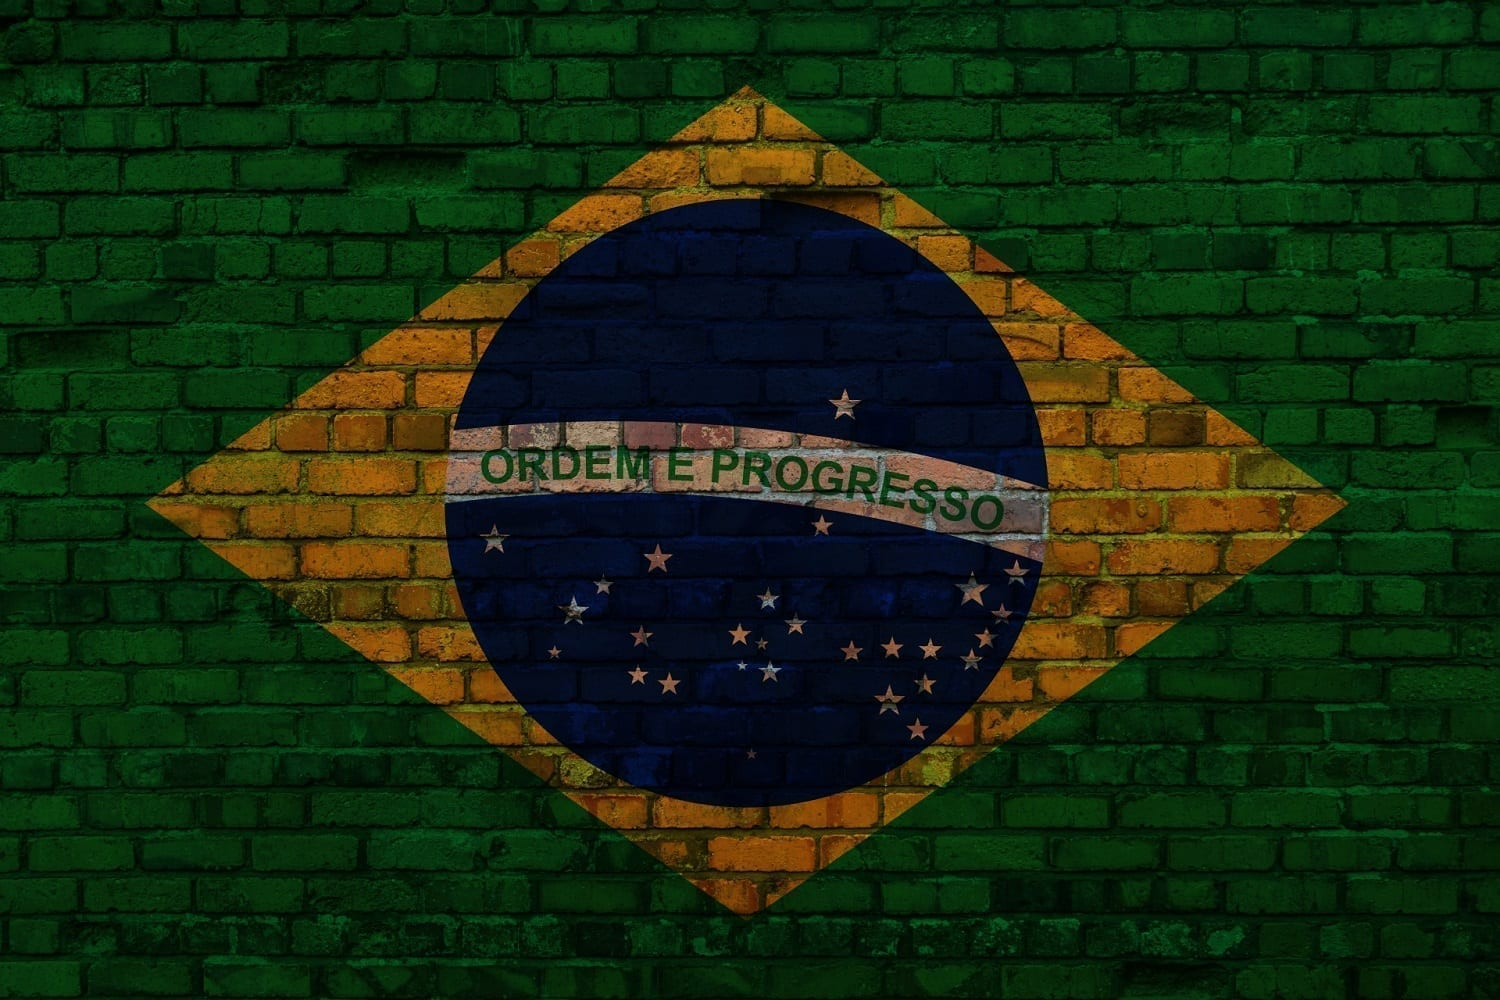 Flag of Brazil painted on a brick wall, photo credit: George Hodan